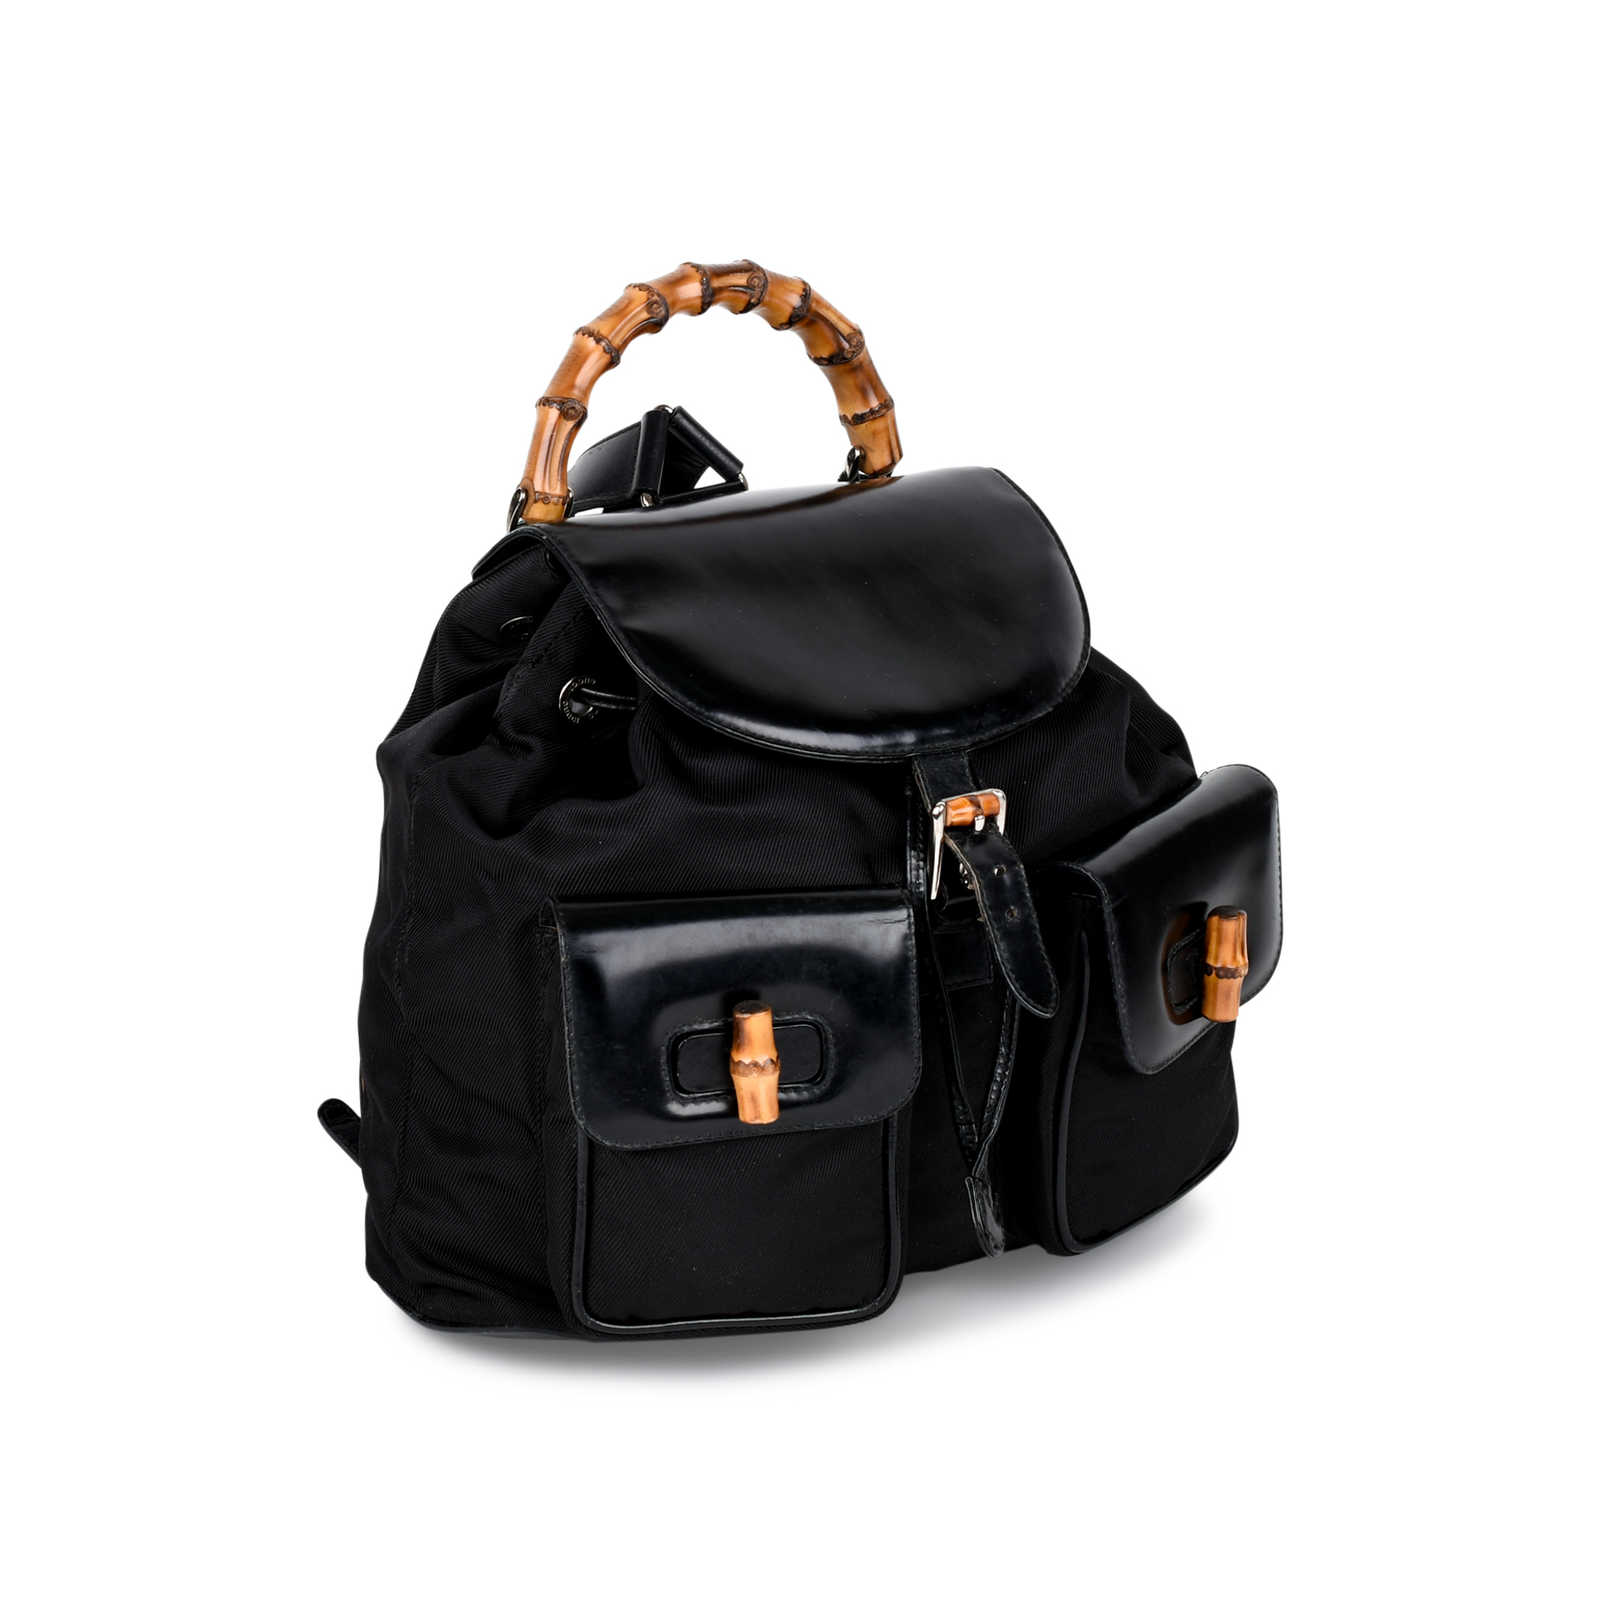 982cb5a6a9f ... Authentic Vintage Gucci Bamboo Backpack (PSS-214-00023) - Thumbnail 1  ...